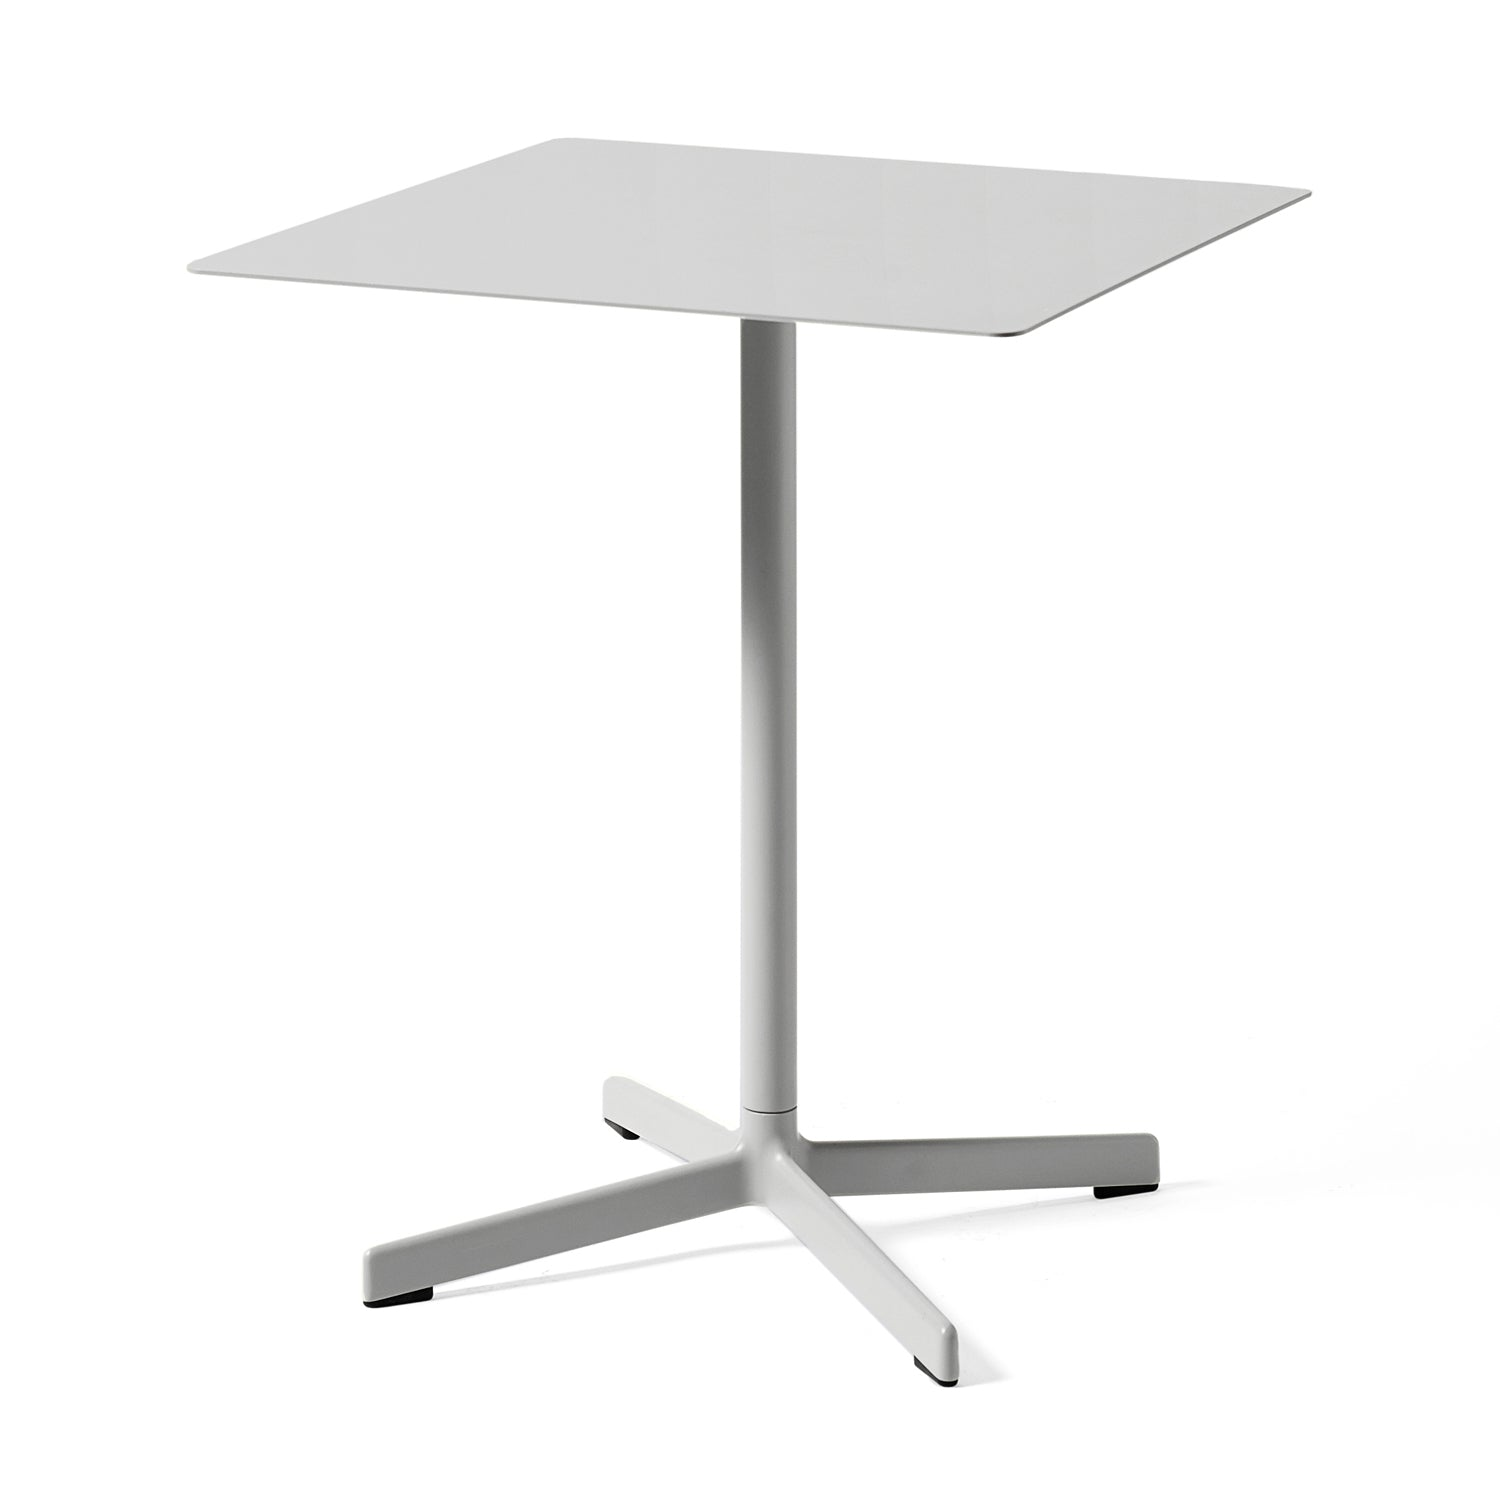 Hay Neu Table Square 60cm x 60cm